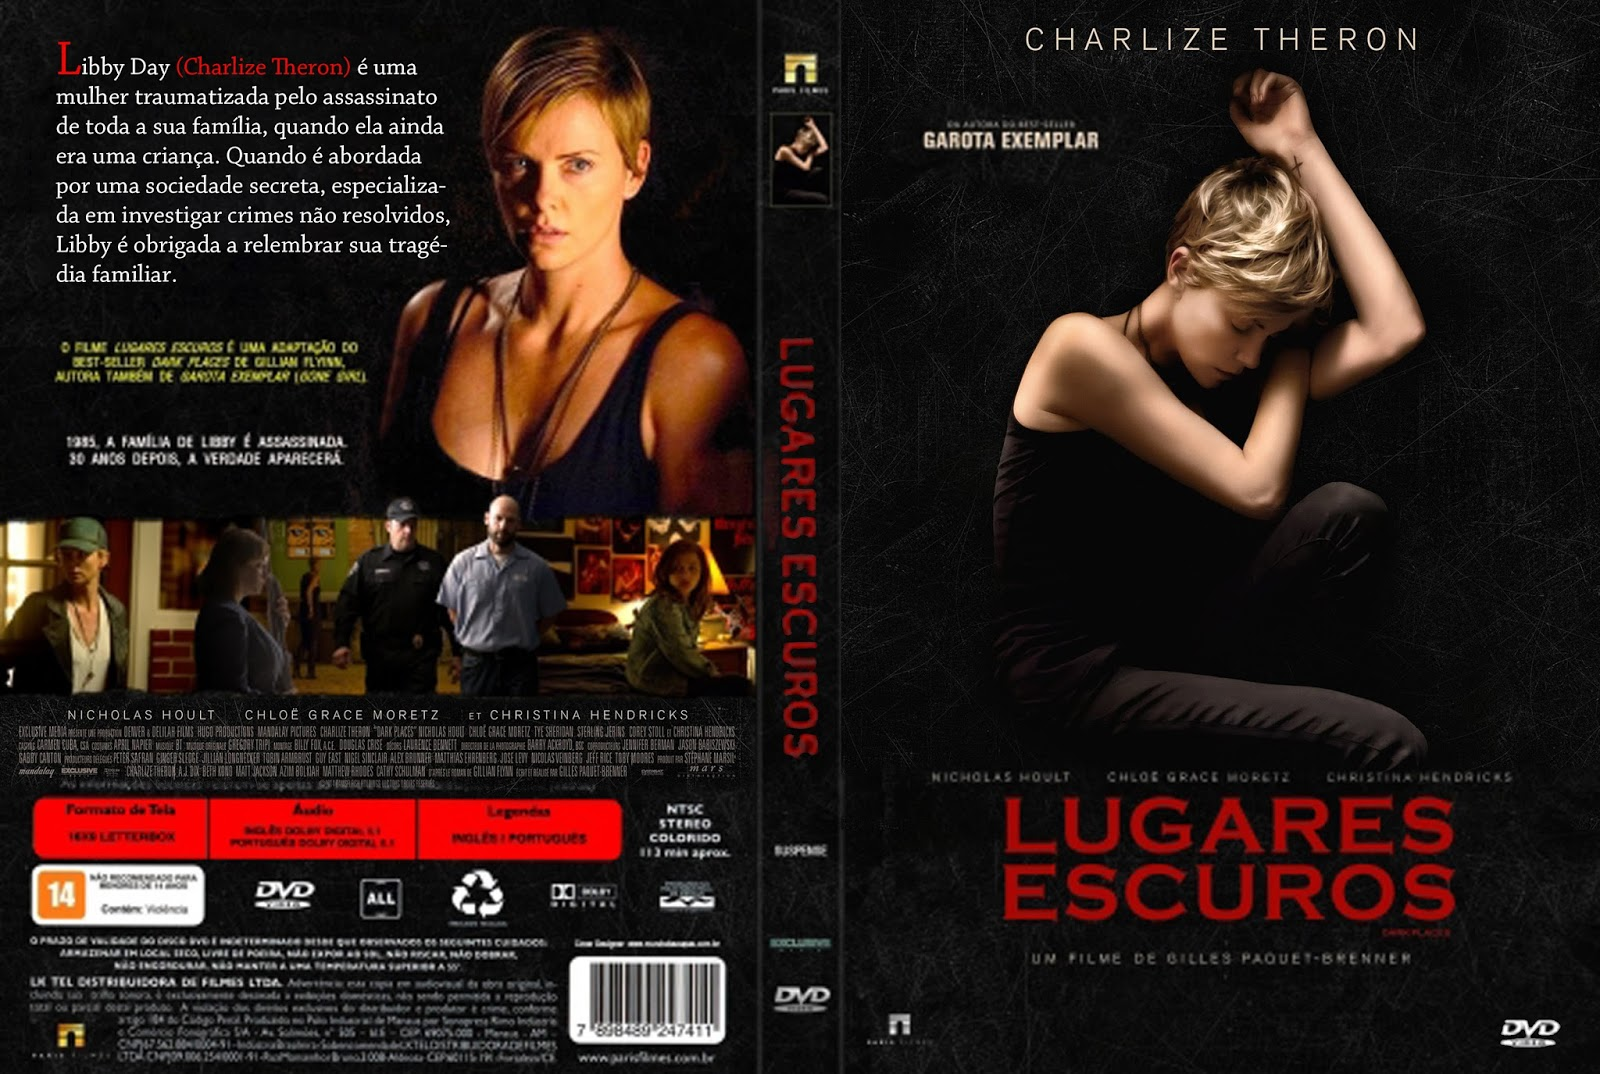 Download Lugares Escuros BDRip XviD Dual Áudio Lugares 2BEscuros